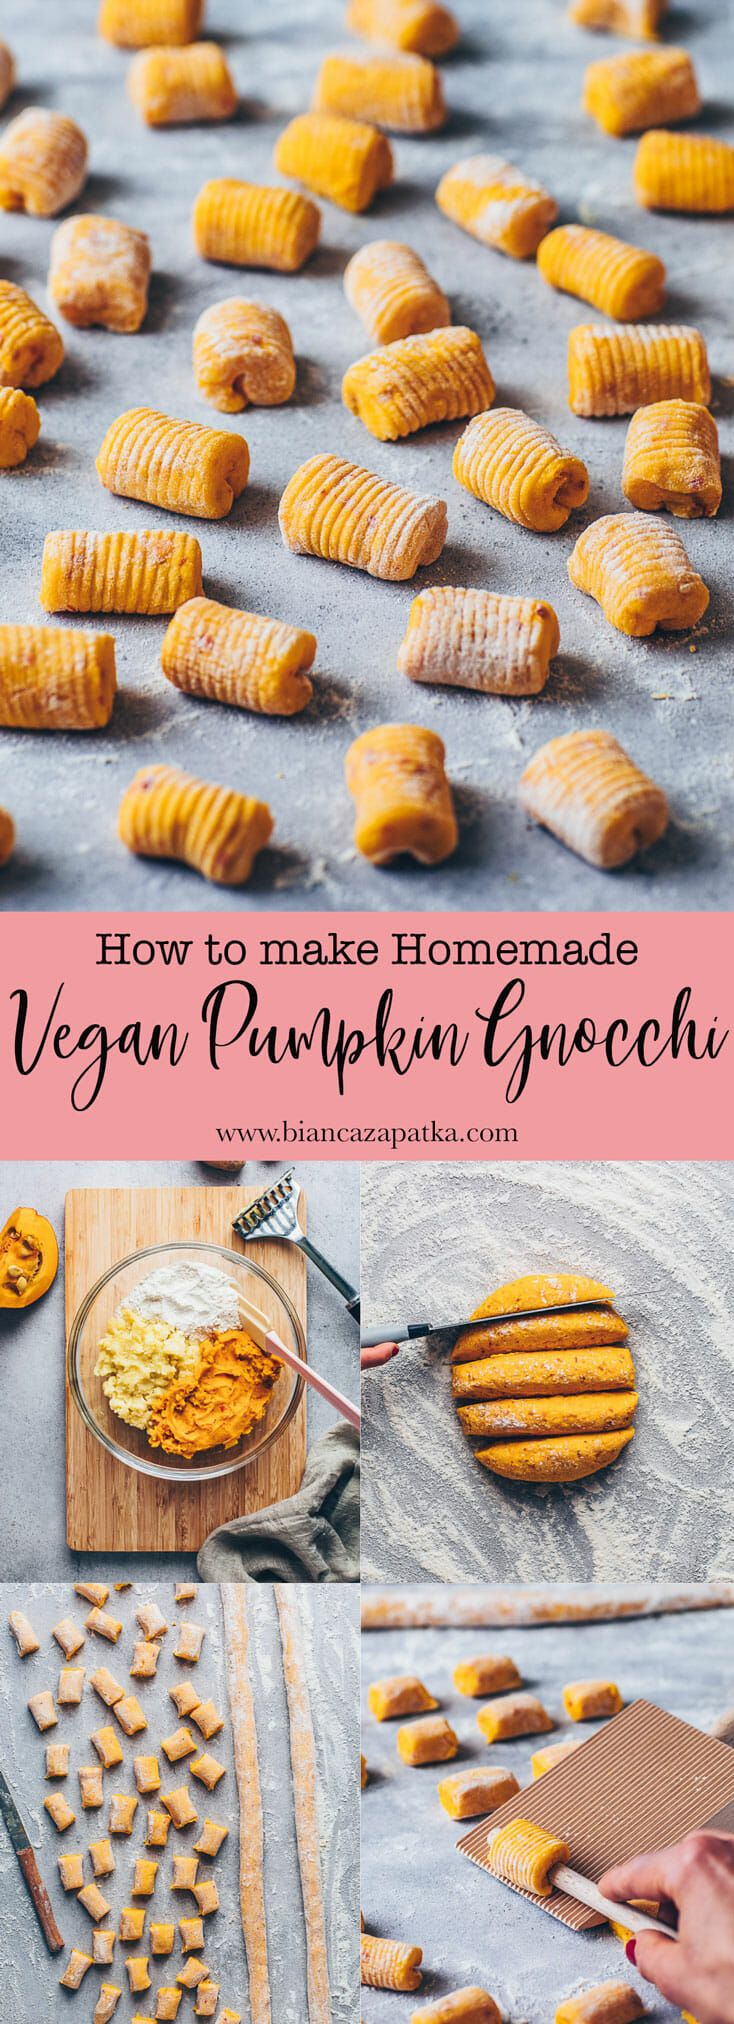 Pumpkin Gnocchi Recipe | Vegan, Homemade - Bianca Zapatka | Recipes #fallrecipesdinner